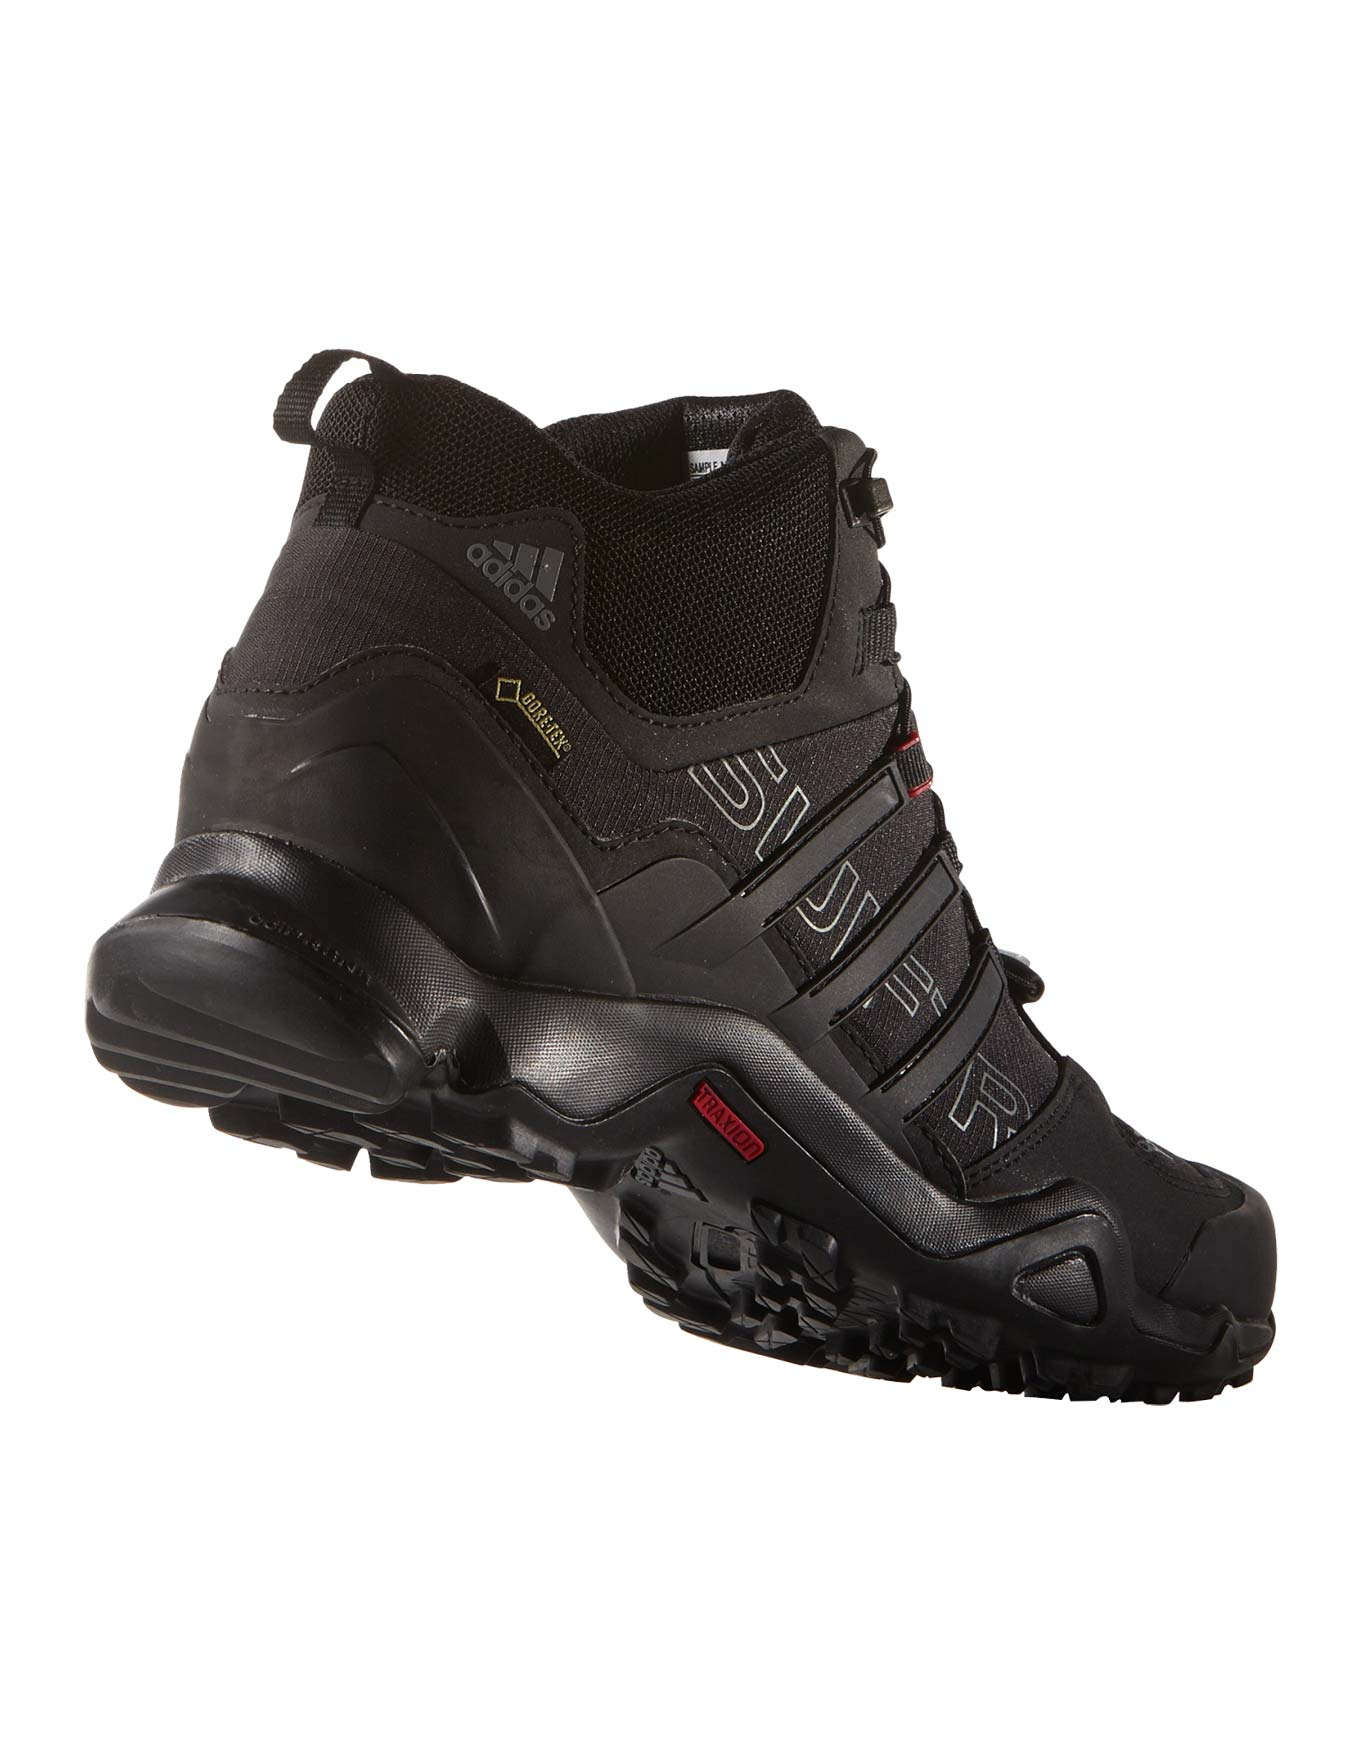 b0a710ae8 Terrex Swift R Mid GTX Core black Vista Grey Power red adidas terrex ...